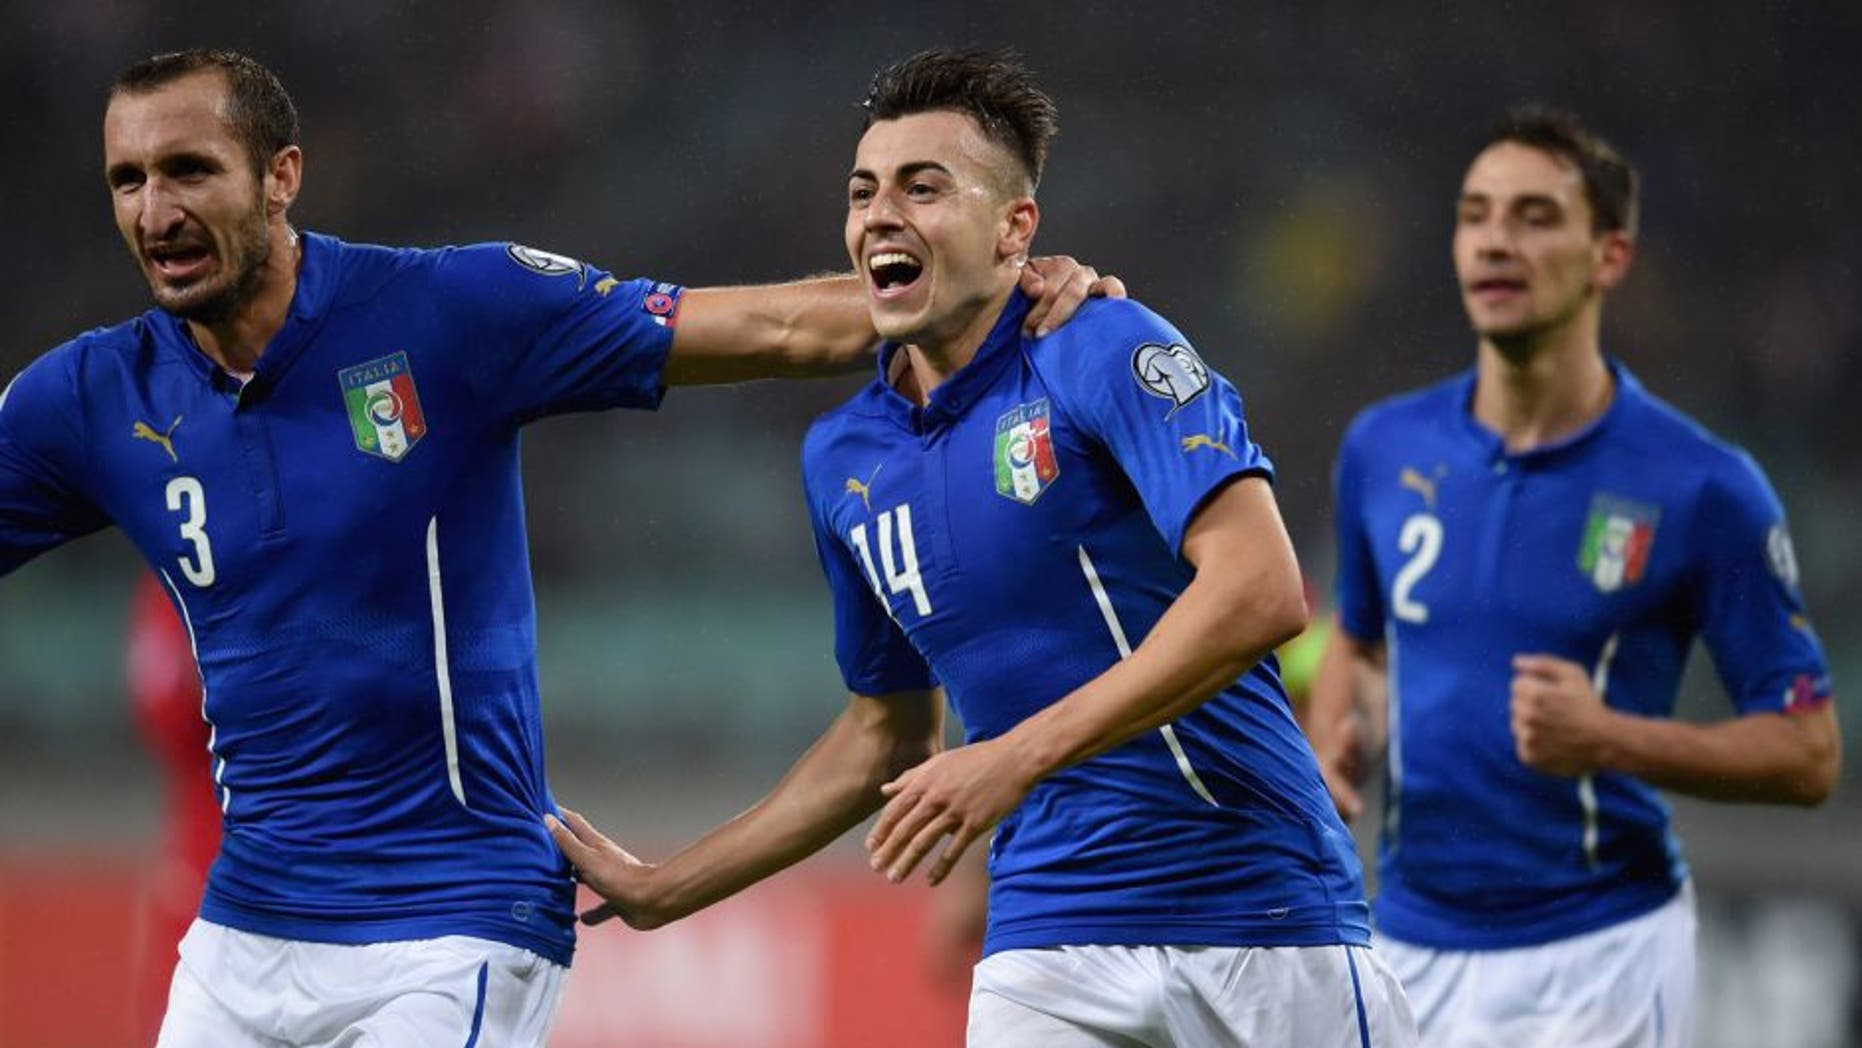 BAKU, AZERBAIJAN - OCTOBER 10: El Shaarawy of Italy #14 celebrates after scoring the second goal during the UEFA Euro 2016 qualifying football match between Azerbaijan and Italy at Olympic Stadium on October 10, 2015 in Baku, Azerbaijan. (Photo by Claudio Villa/Getty Images)